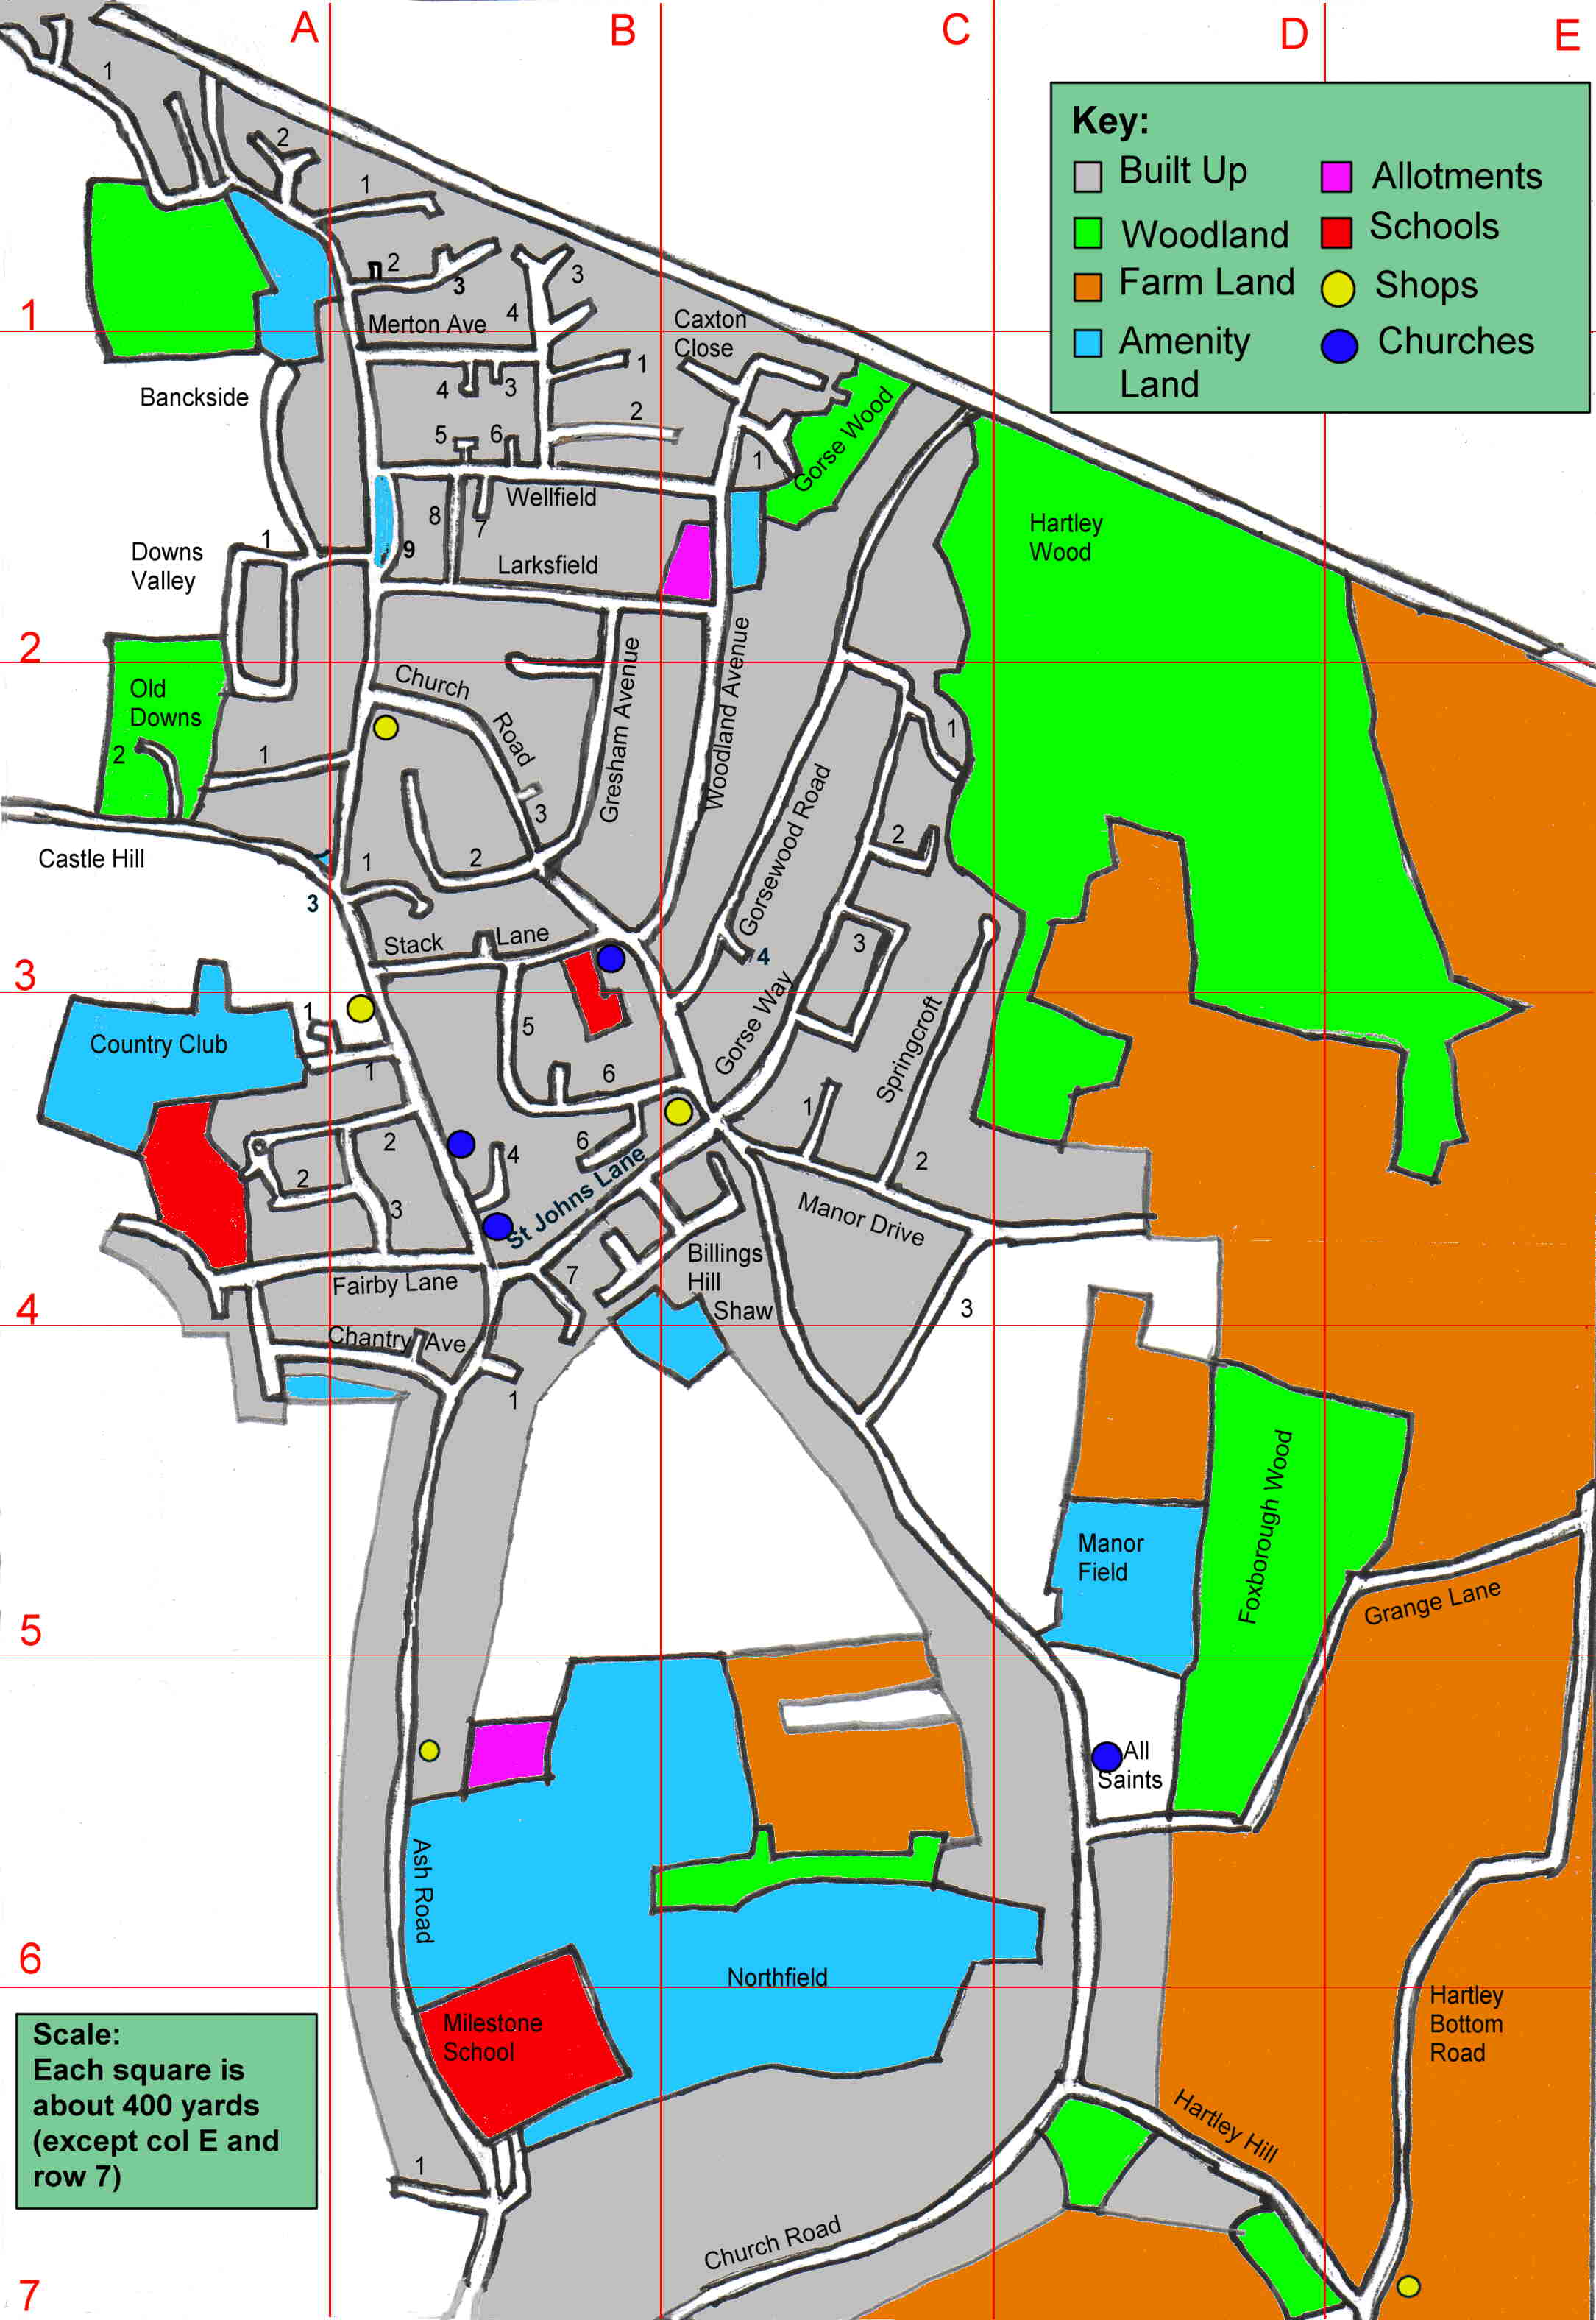 Hartley, Kent - Streetmap and land use map